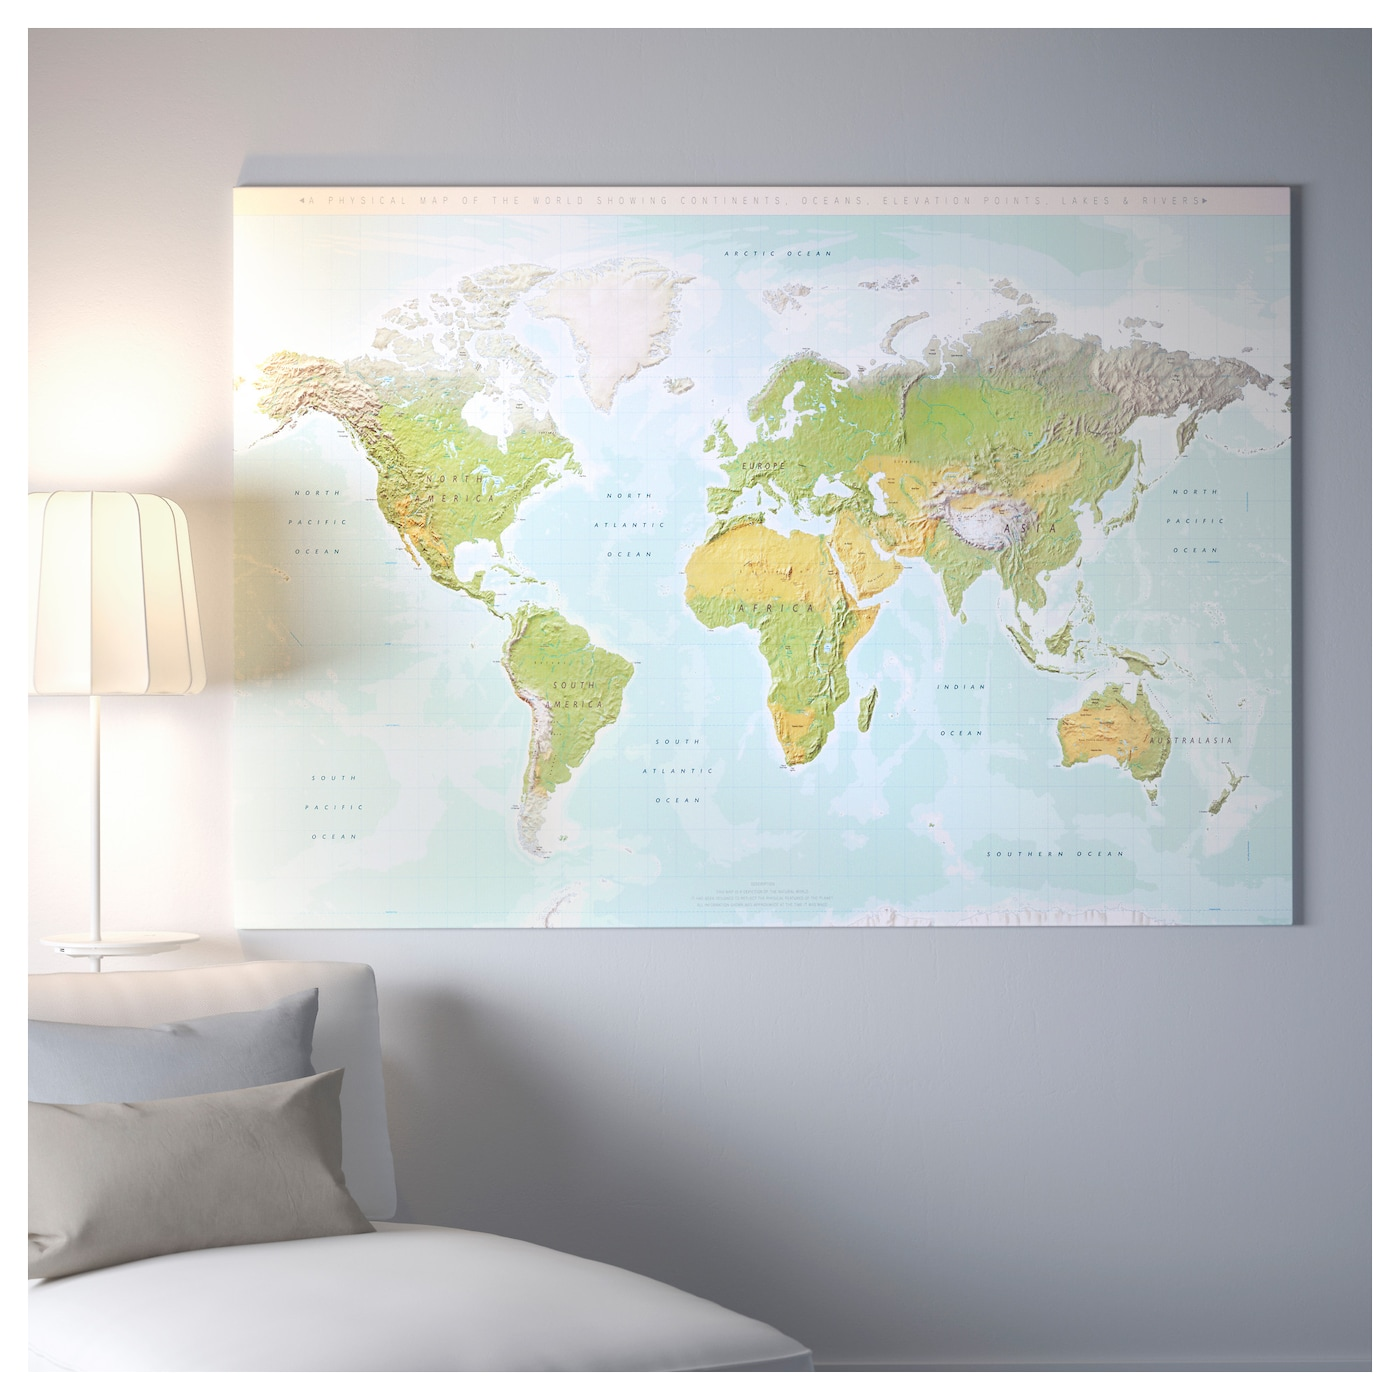 Bjrksta picture with frame planet earthblack 200x140 cm ikea ikea bjrksta picture with frame the picture and frame come in separate packages gumiabroncs Images